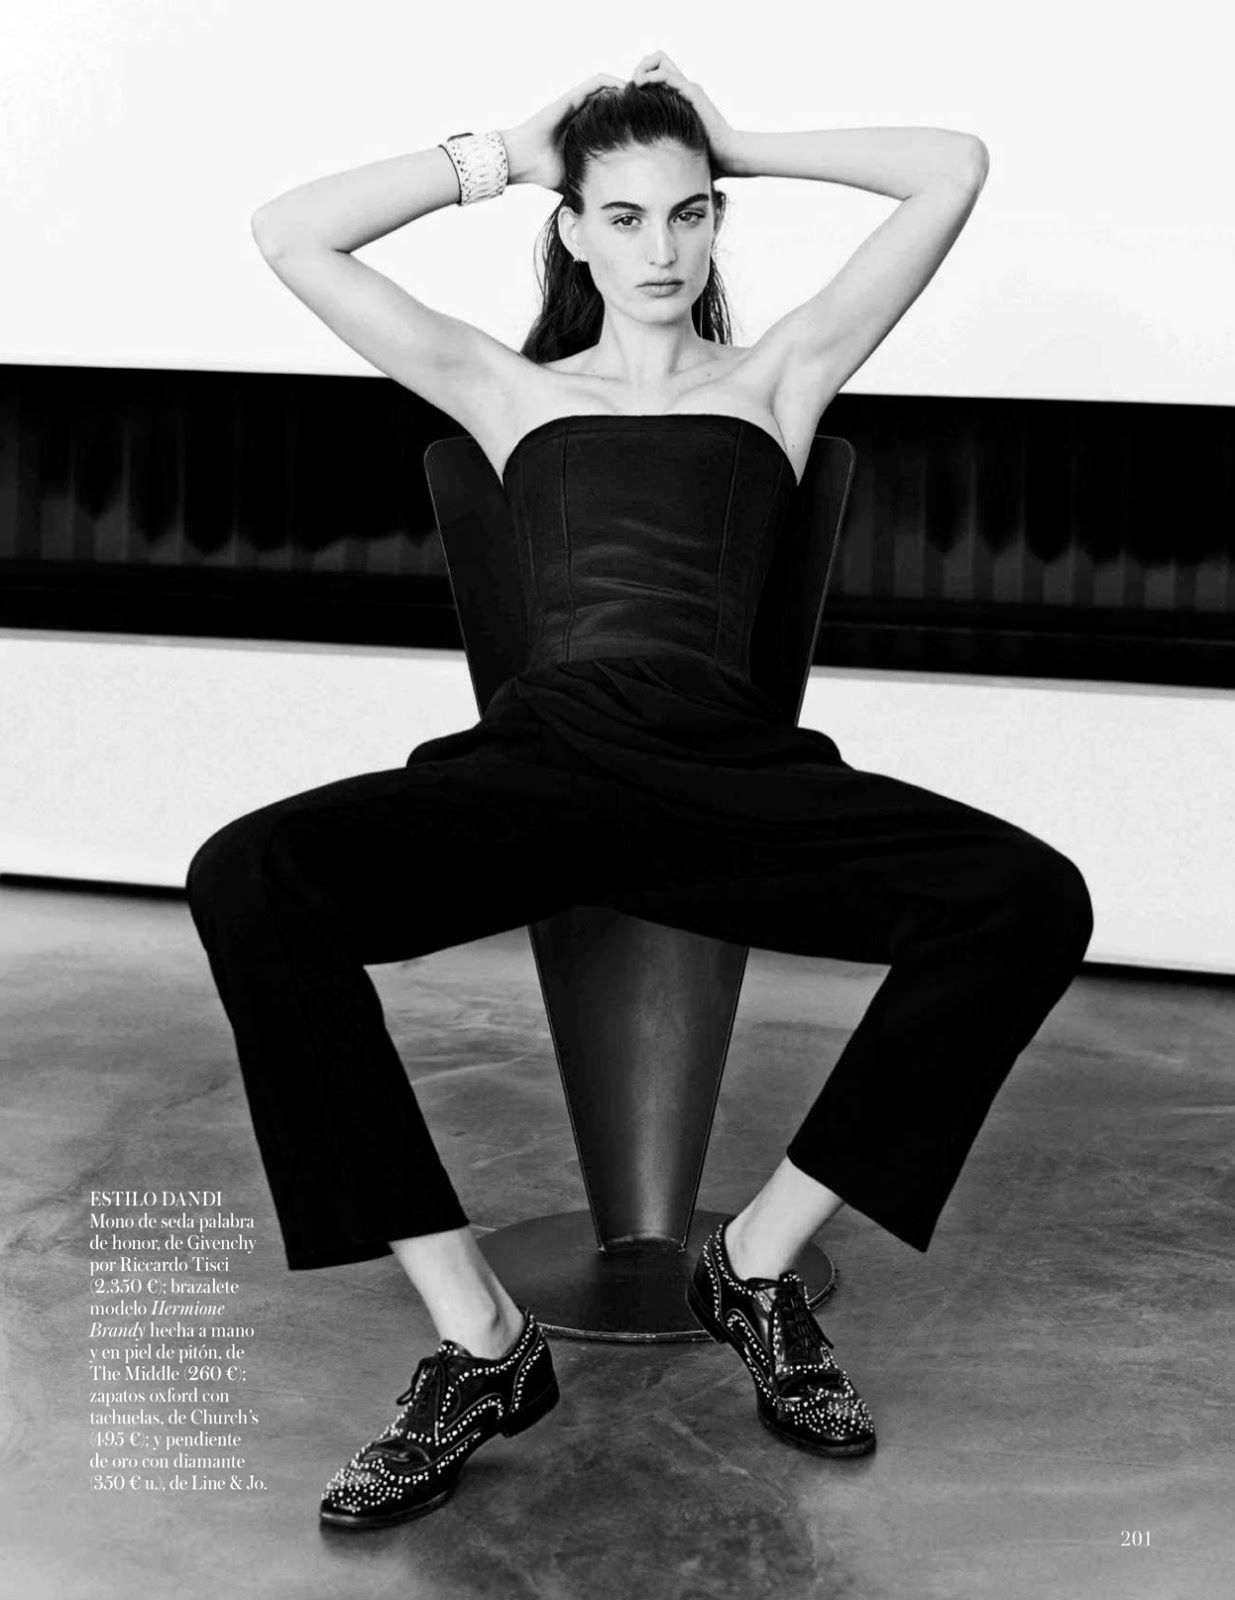 elodia prieto by hasse nielsen for vogue spain may 2014